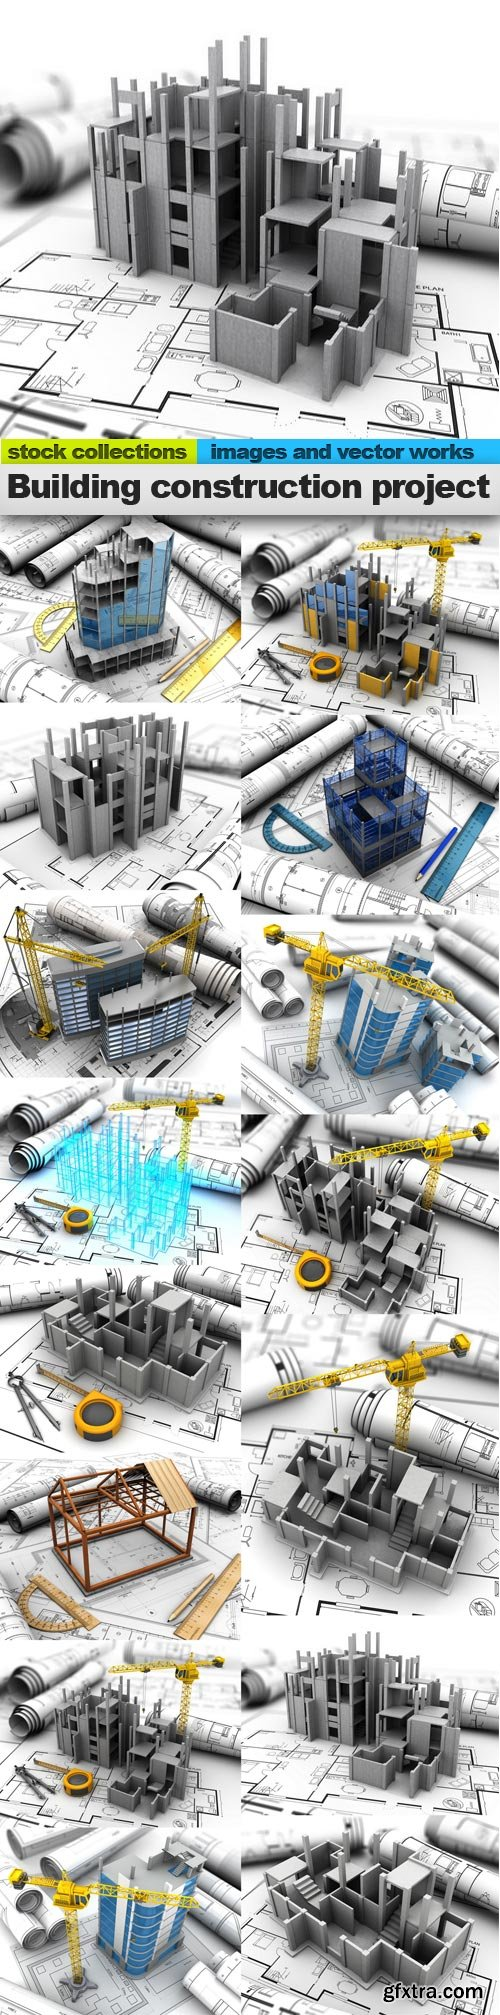 Building construction project, 15 x UHQ JPEG